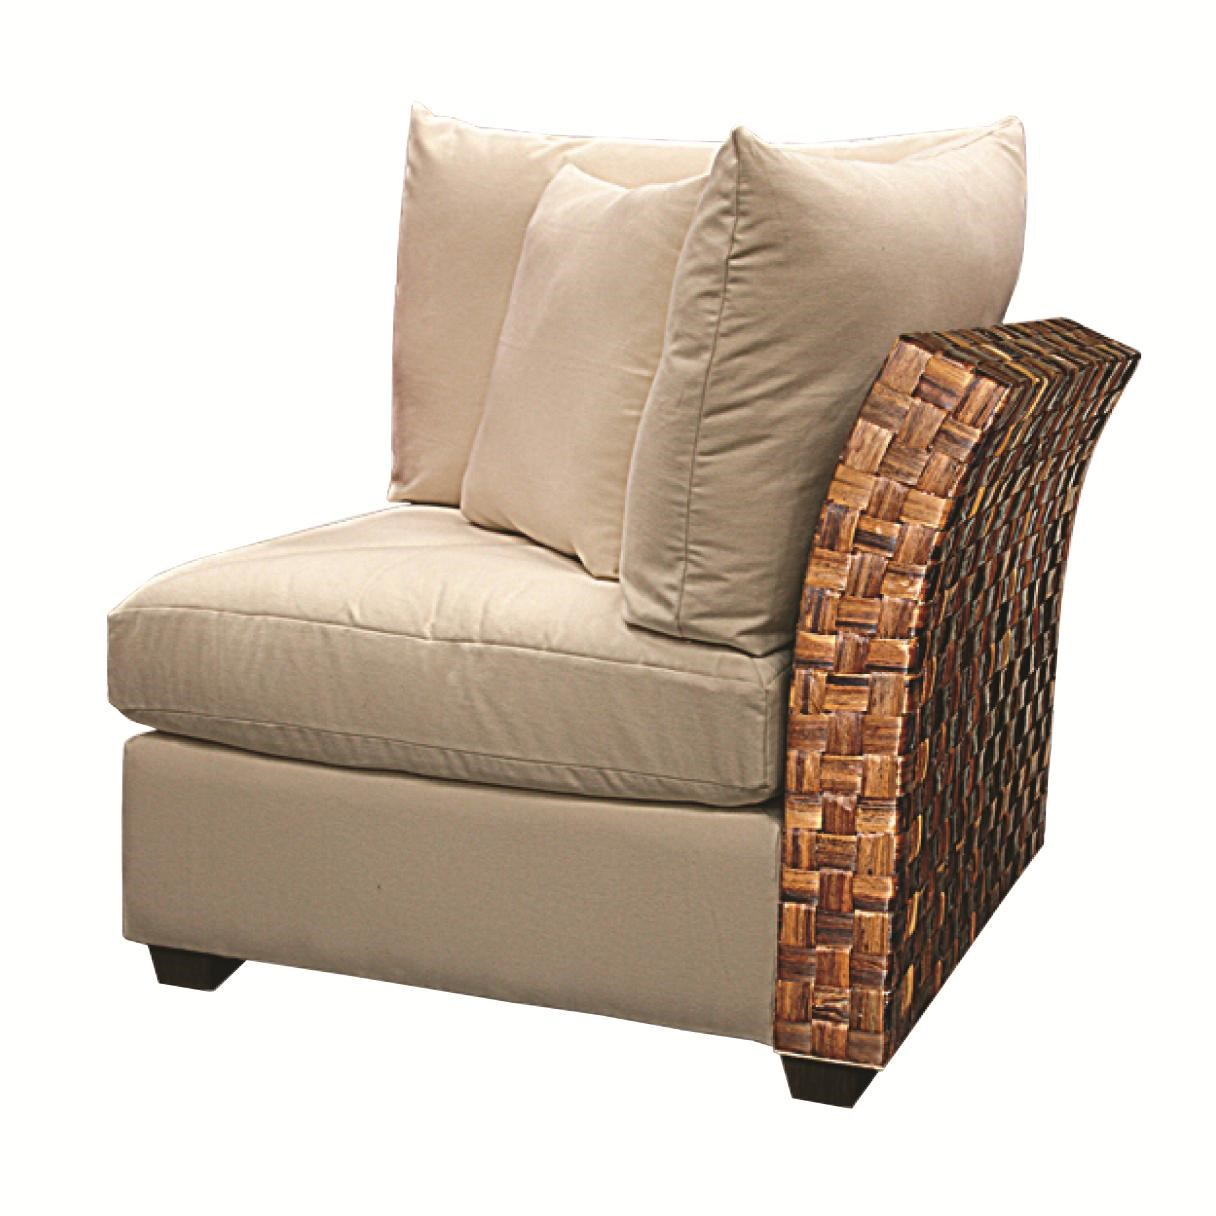 Capris Furniture Chairs And Ottomans Wicker Rattan Armless